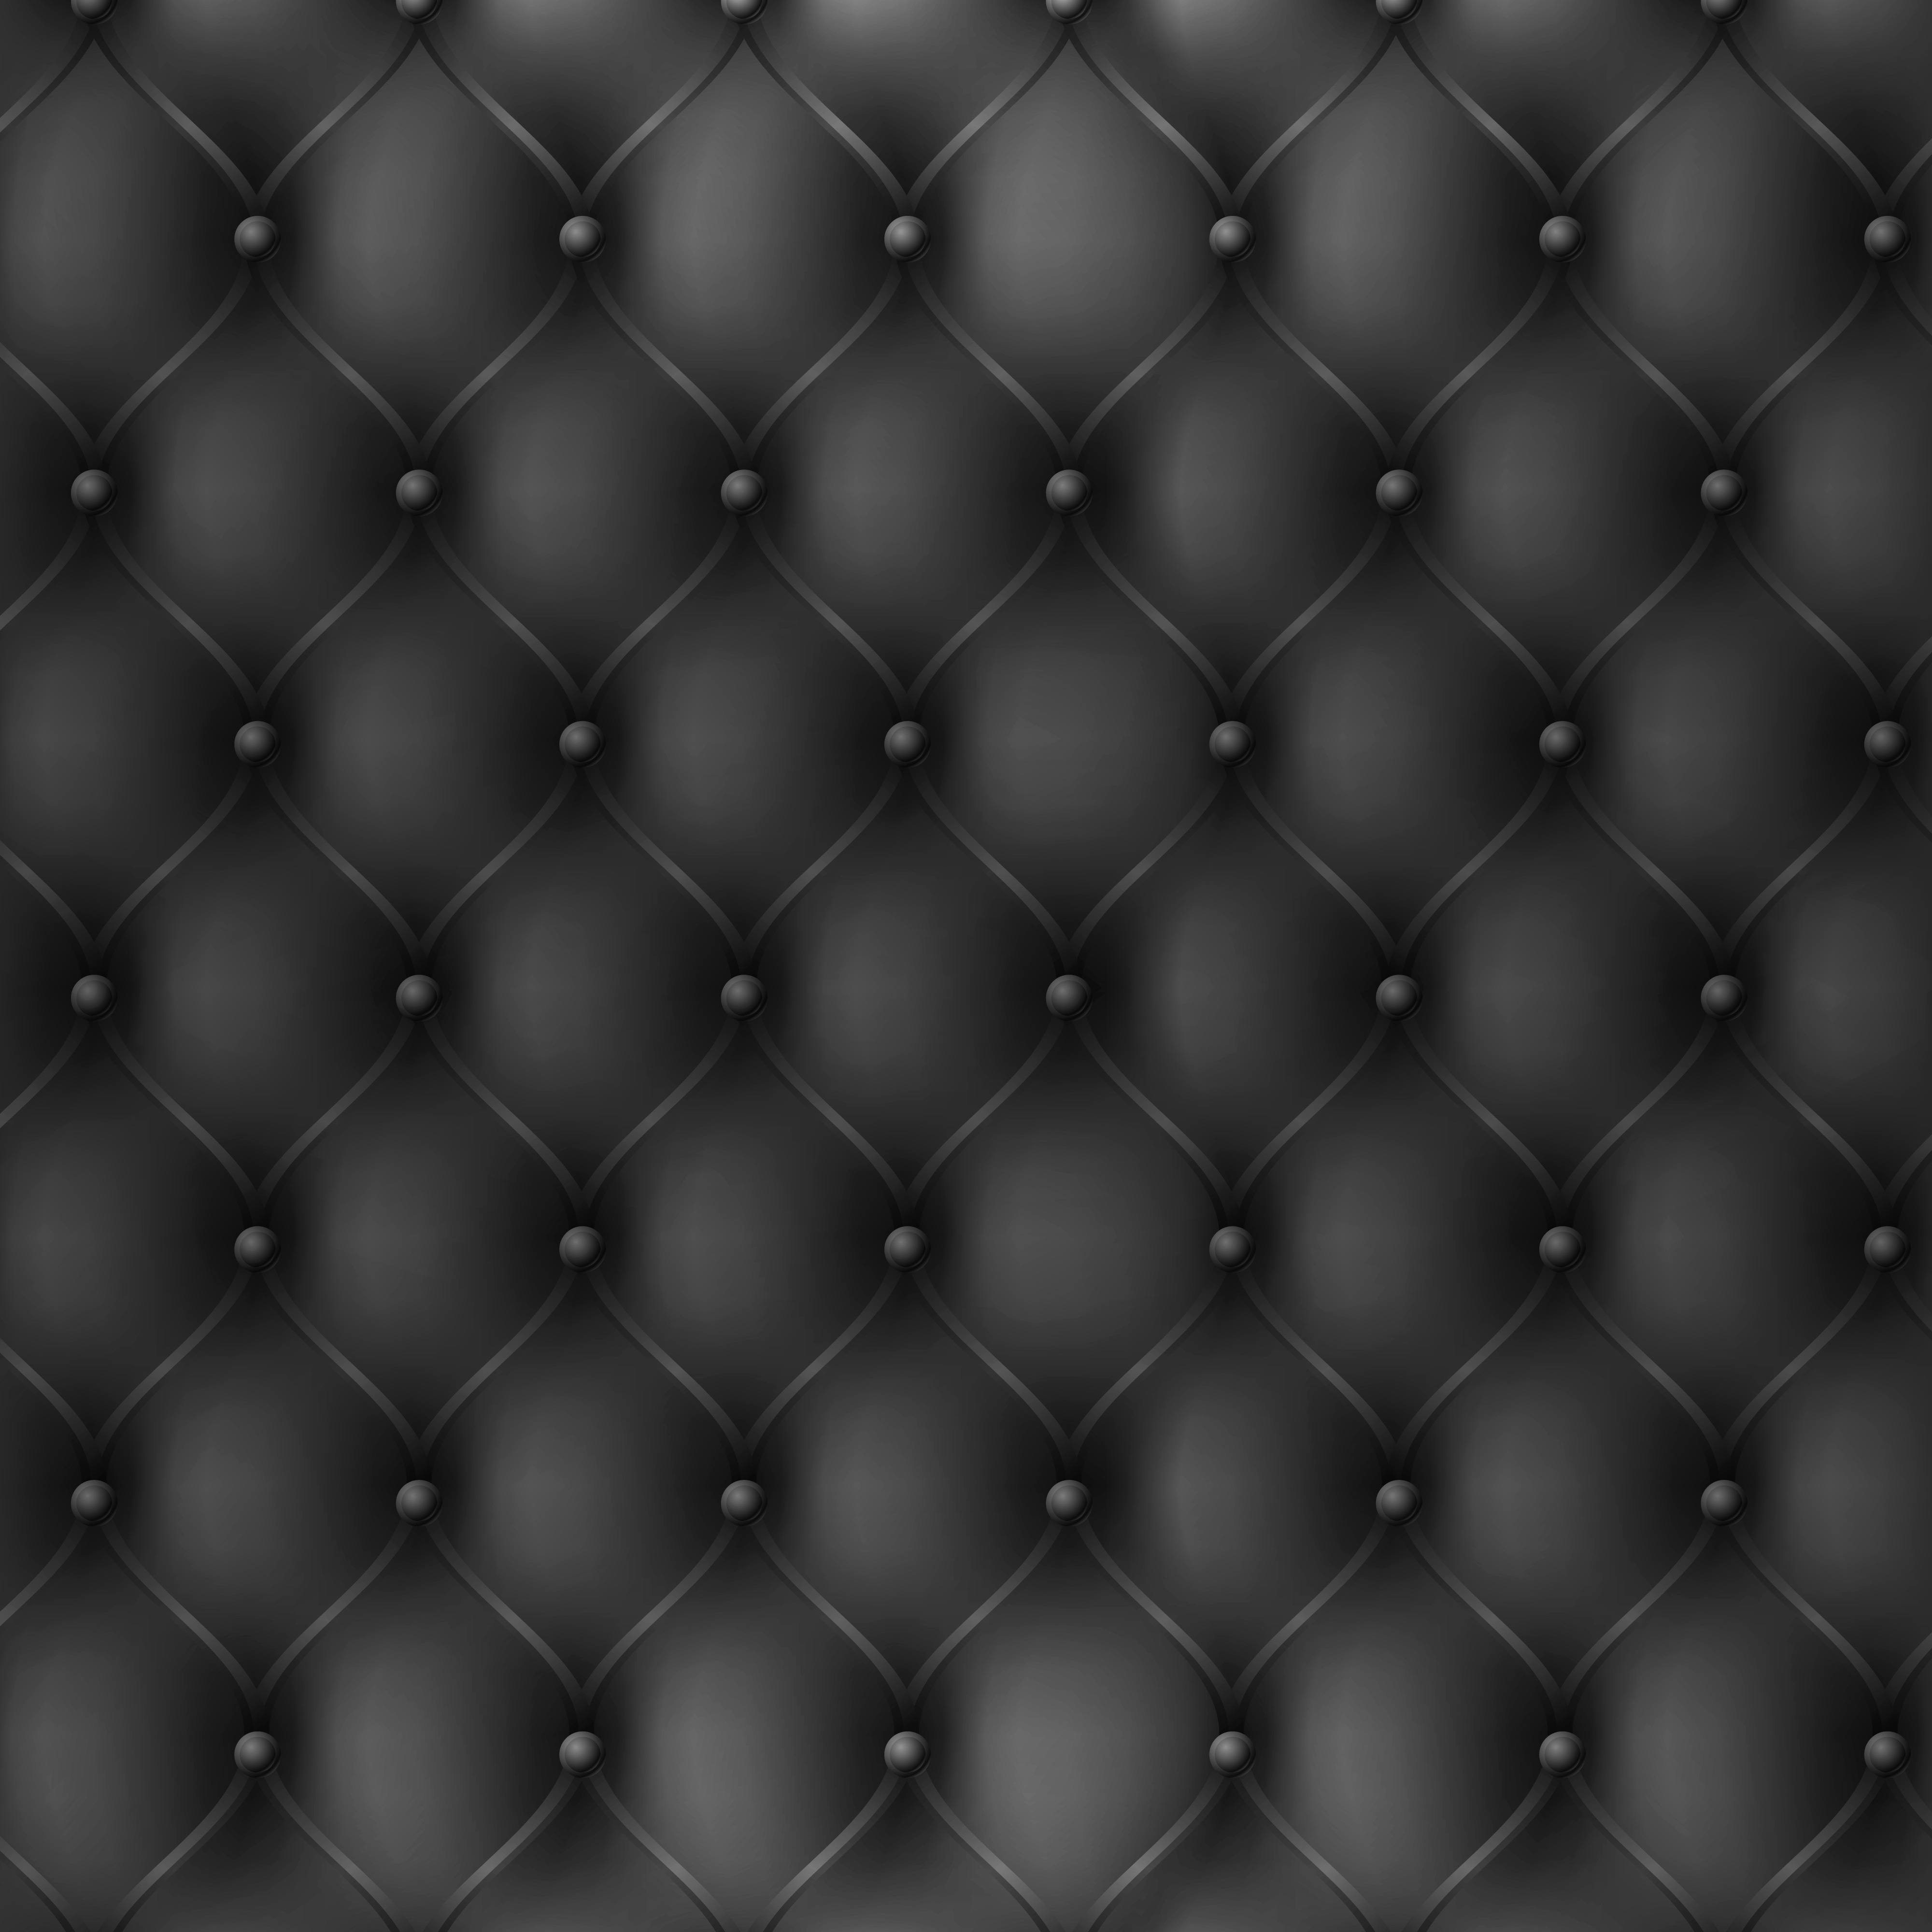 Fabric Texture Free Vector Art 11832 Free Downloads